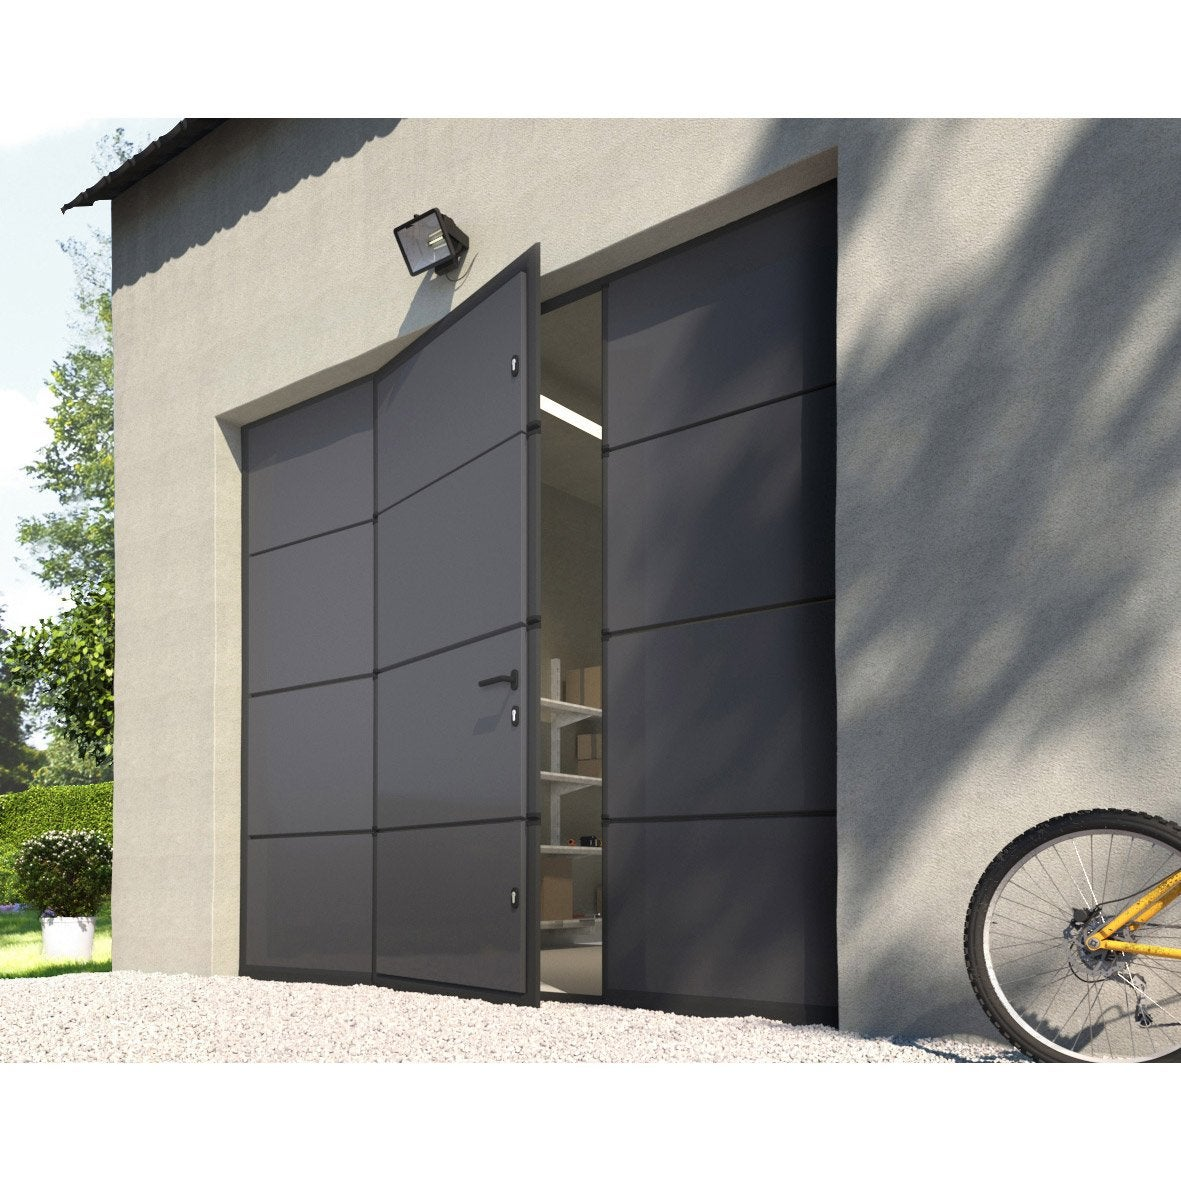 Porte de garage sectionnelle motoris e artens essentiel 200x240cm avec portillon leroy merlin - Portes de garage leroy merlin ...